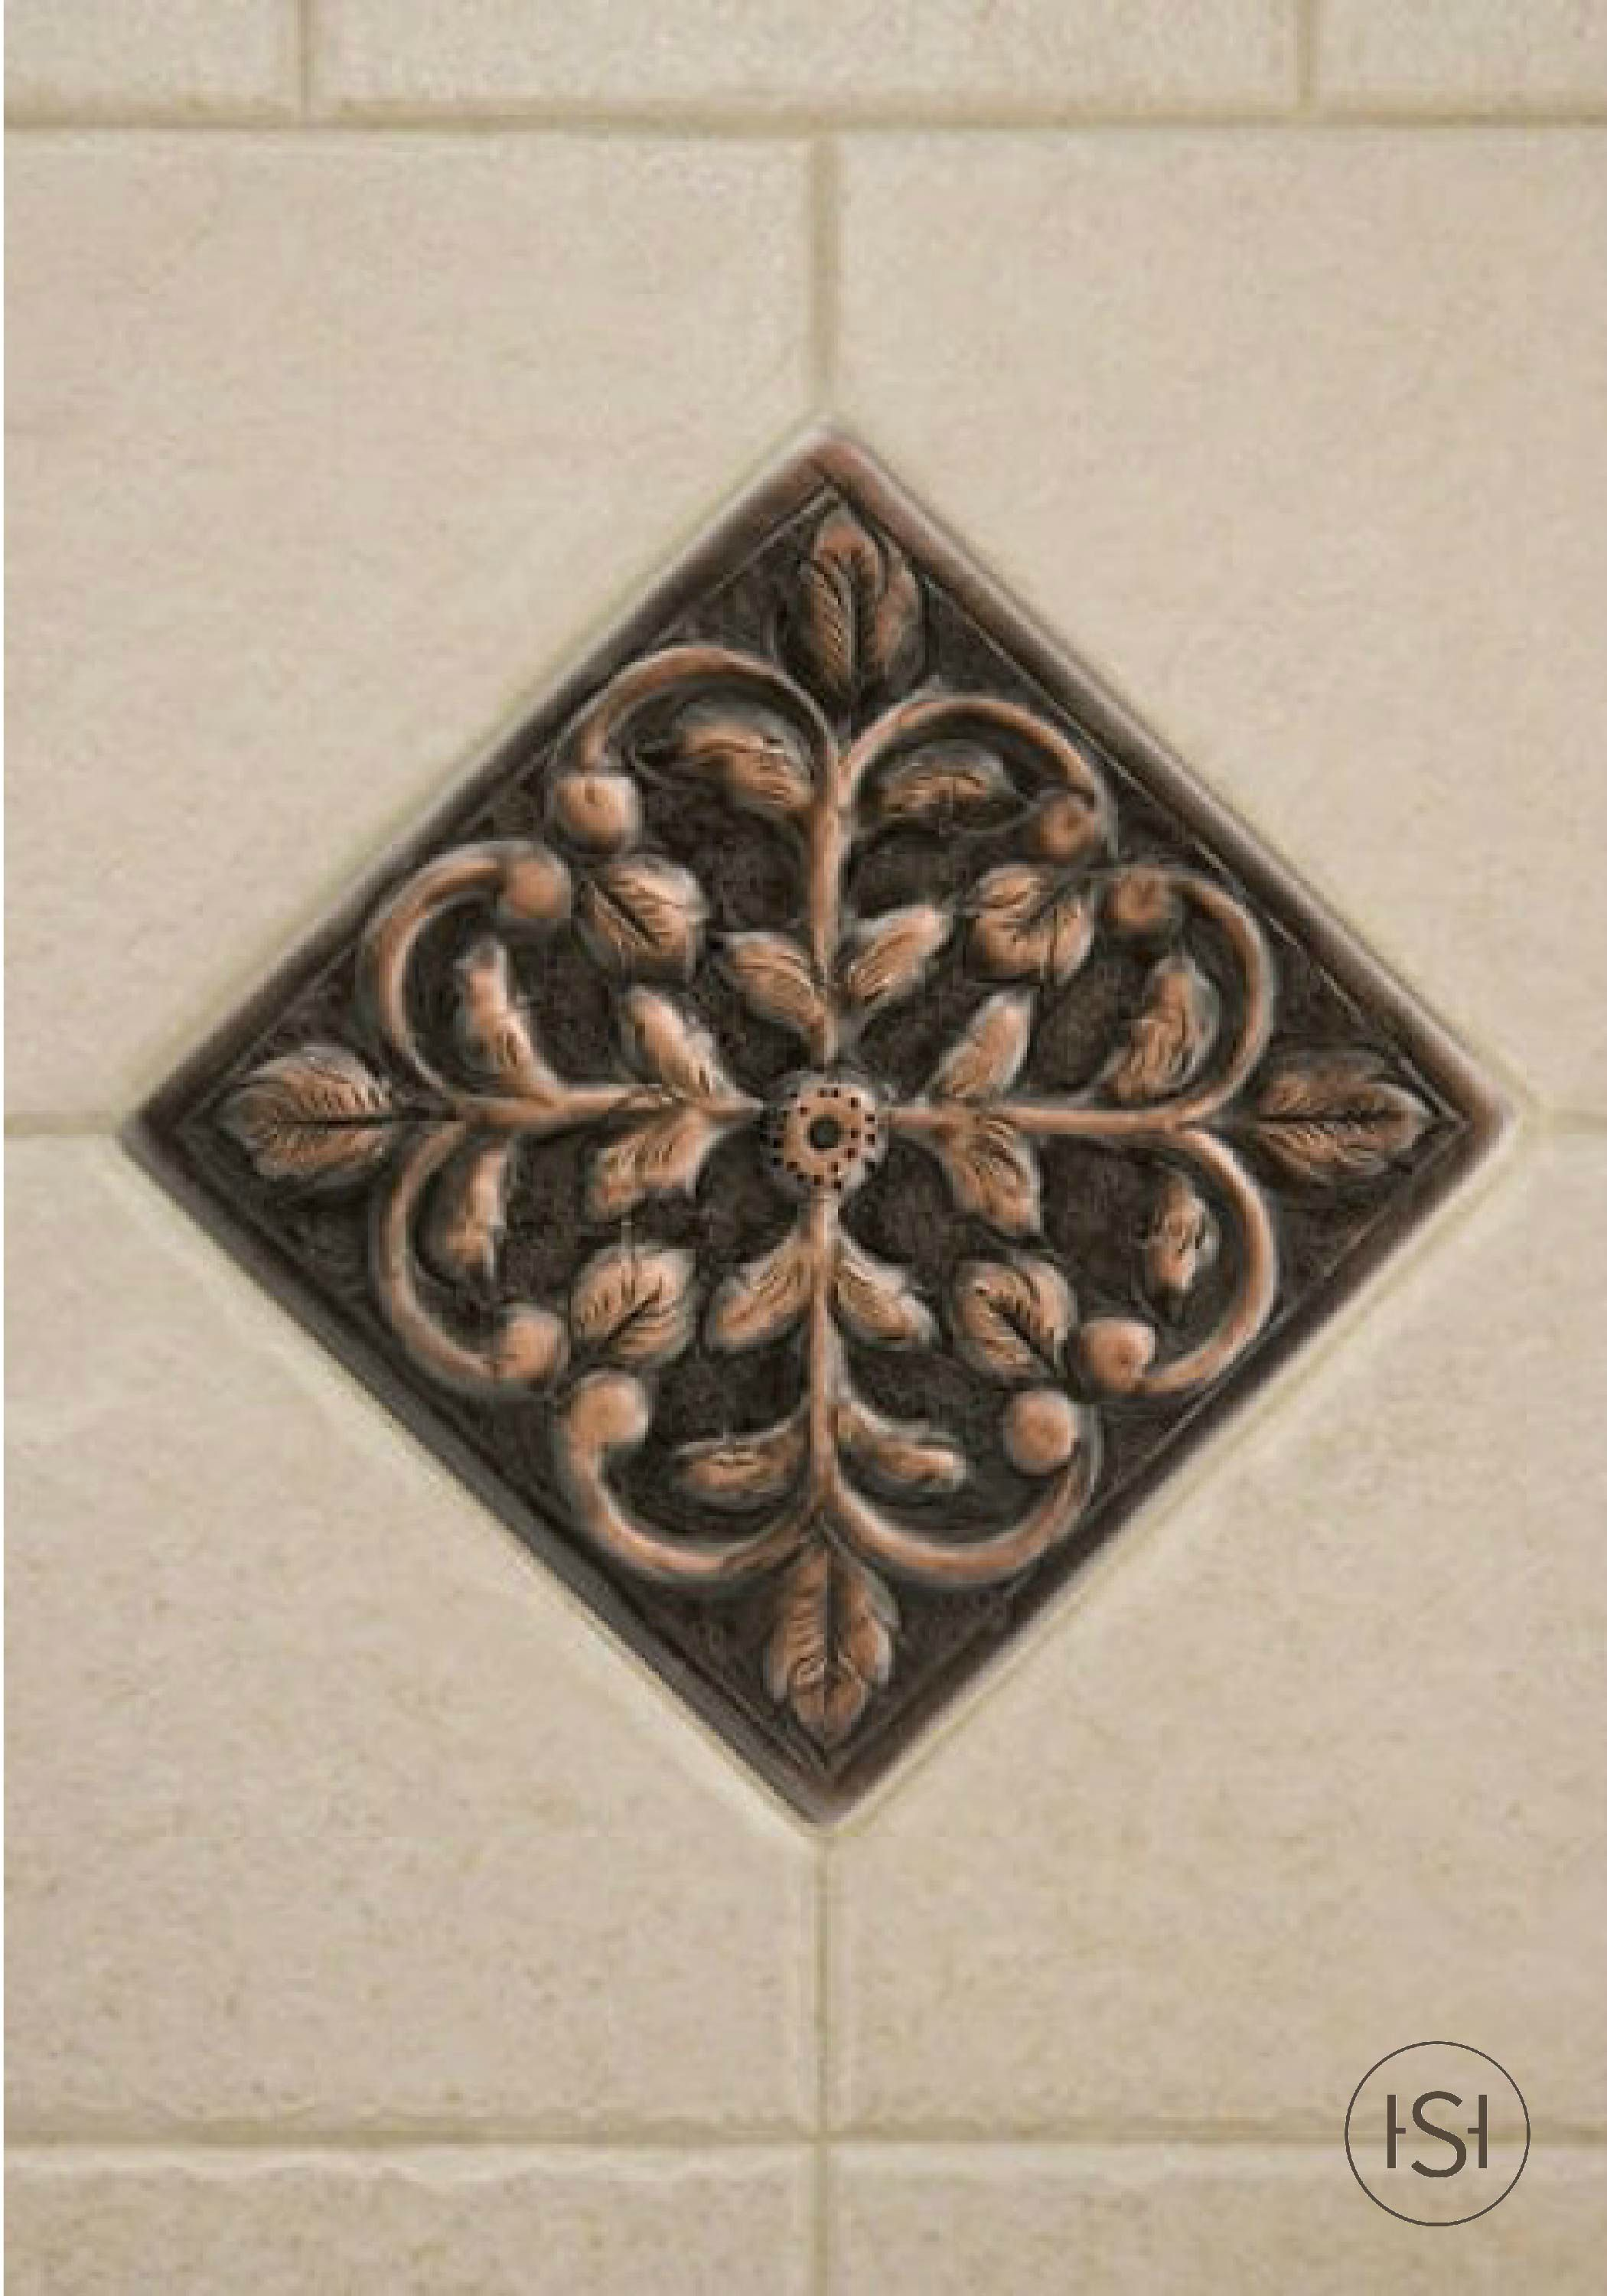 Solid Copper Wall Tile With Dogwood Flower Design